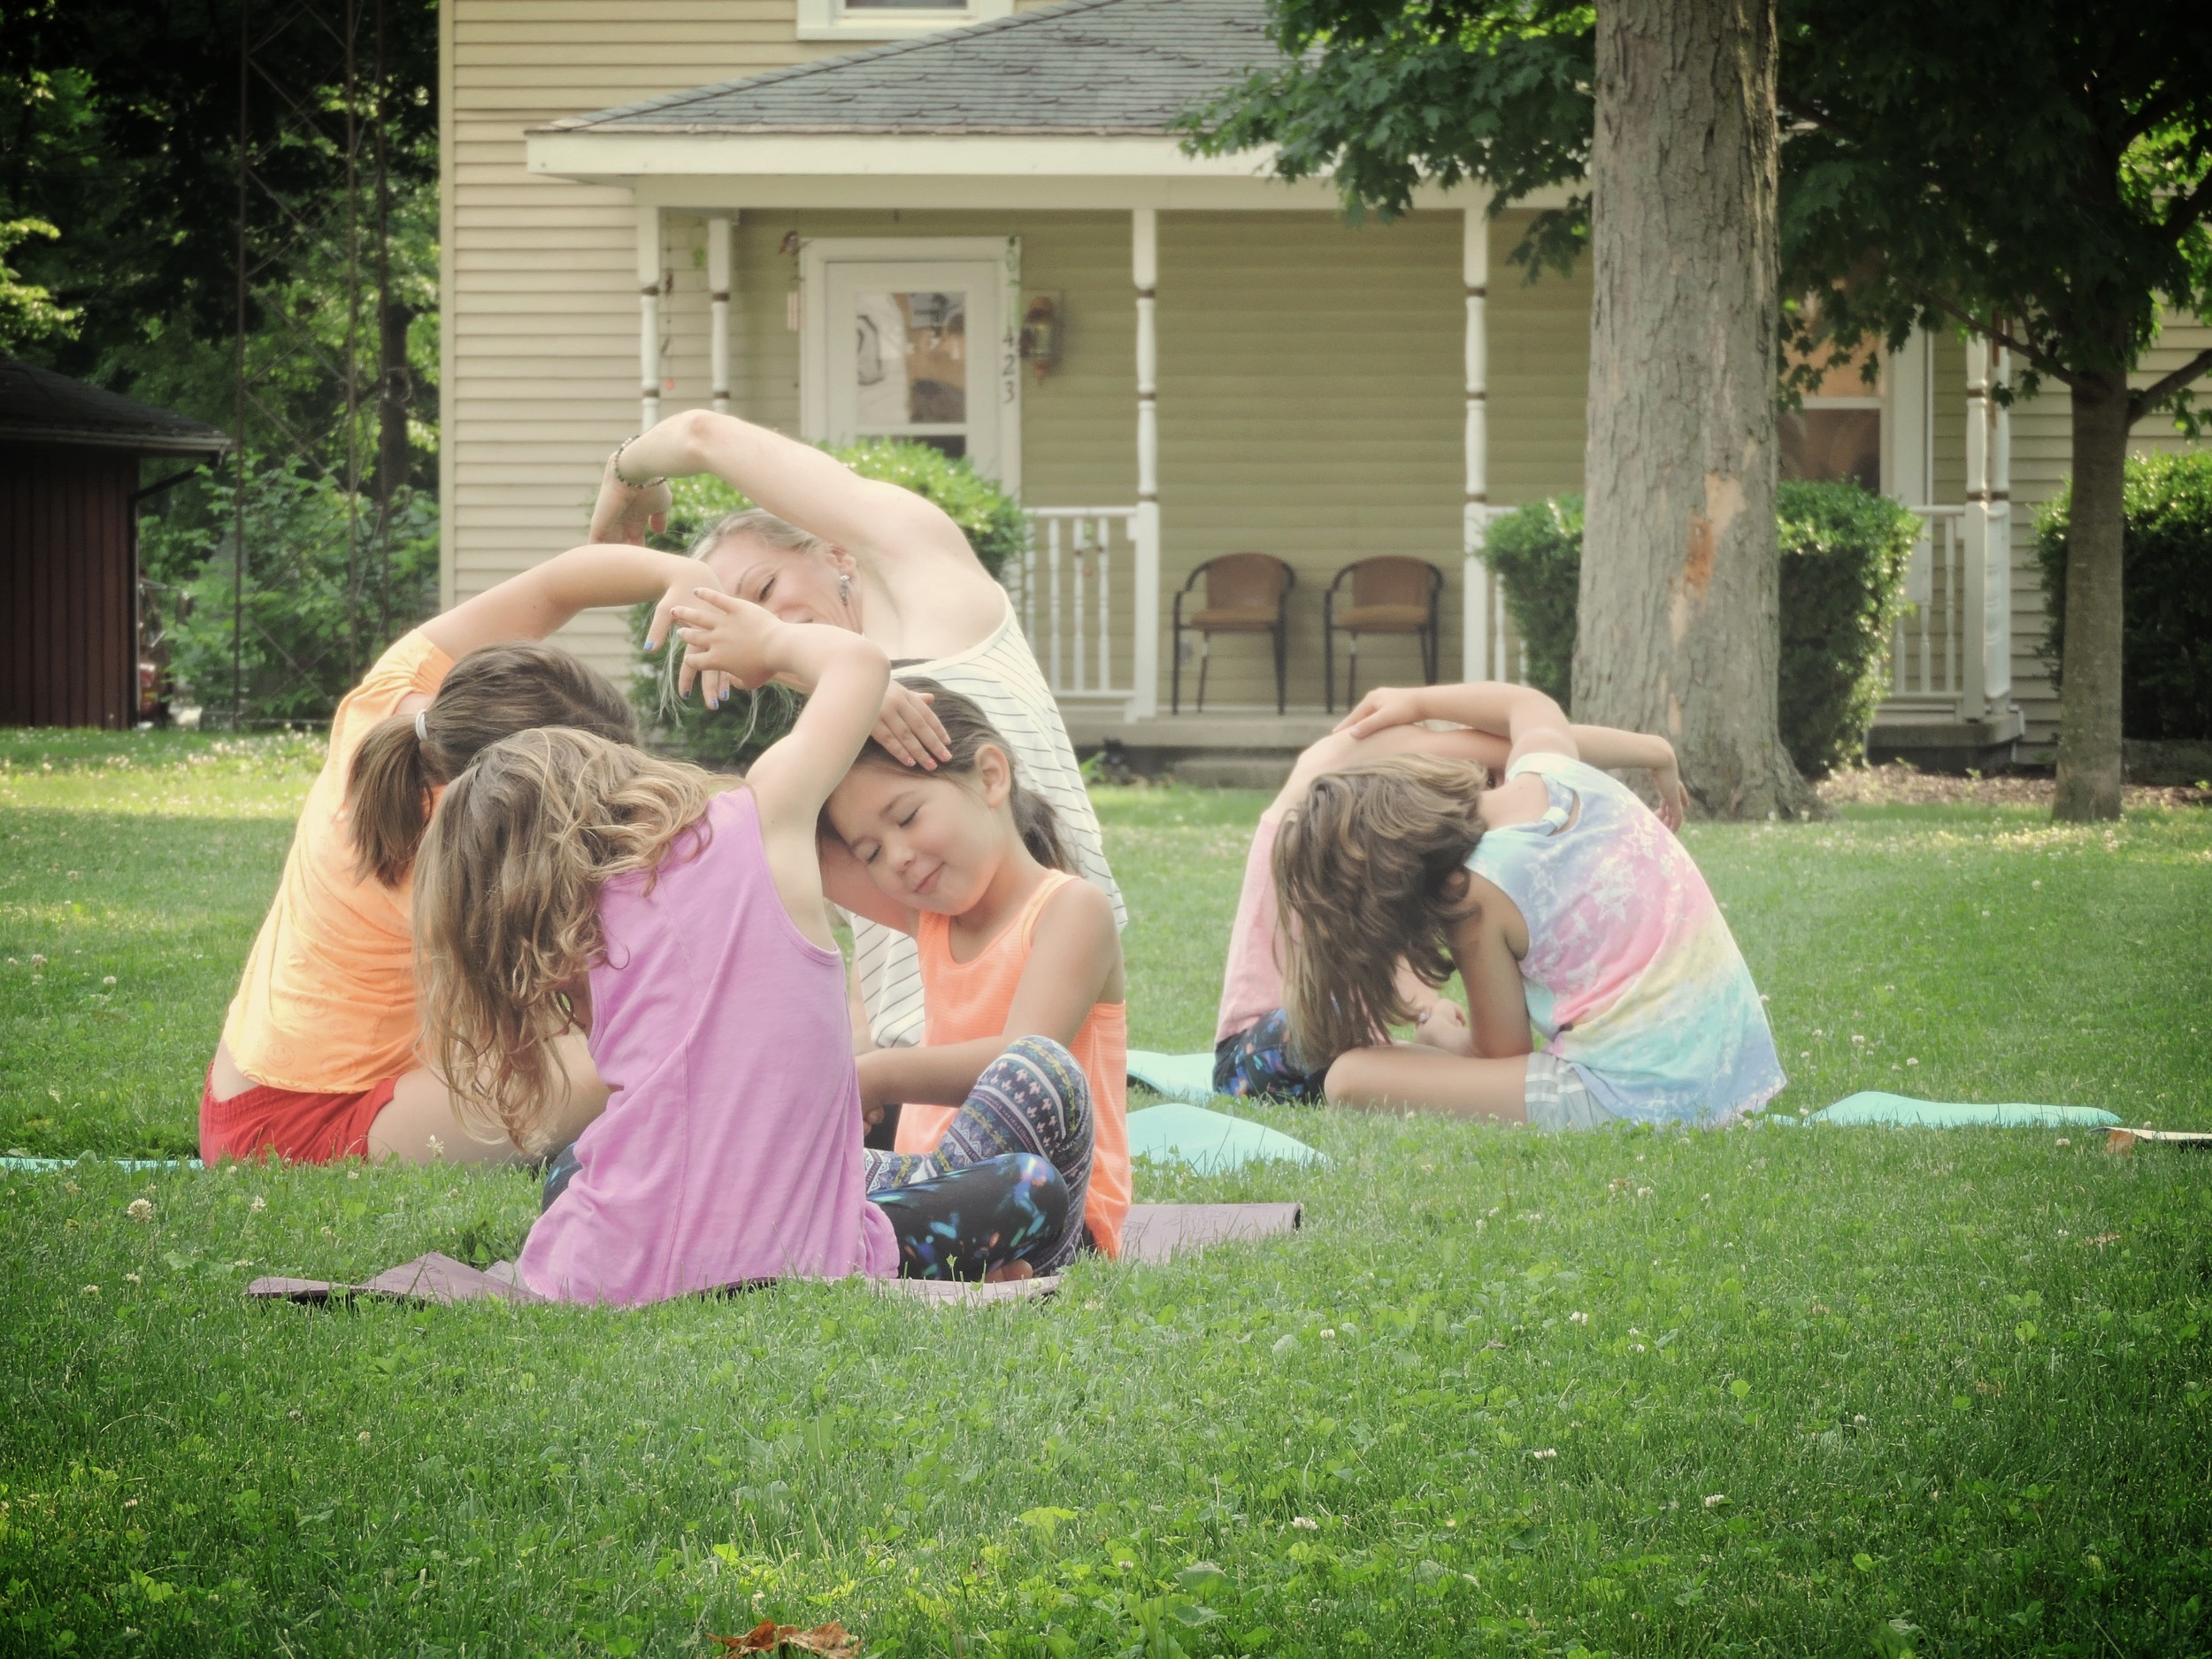 Come experience Kindness Kids Yoga at Theoso Fest! - Join me for this day of free fun for the entire family at the fest and take the family yoga class in Kids Corner...